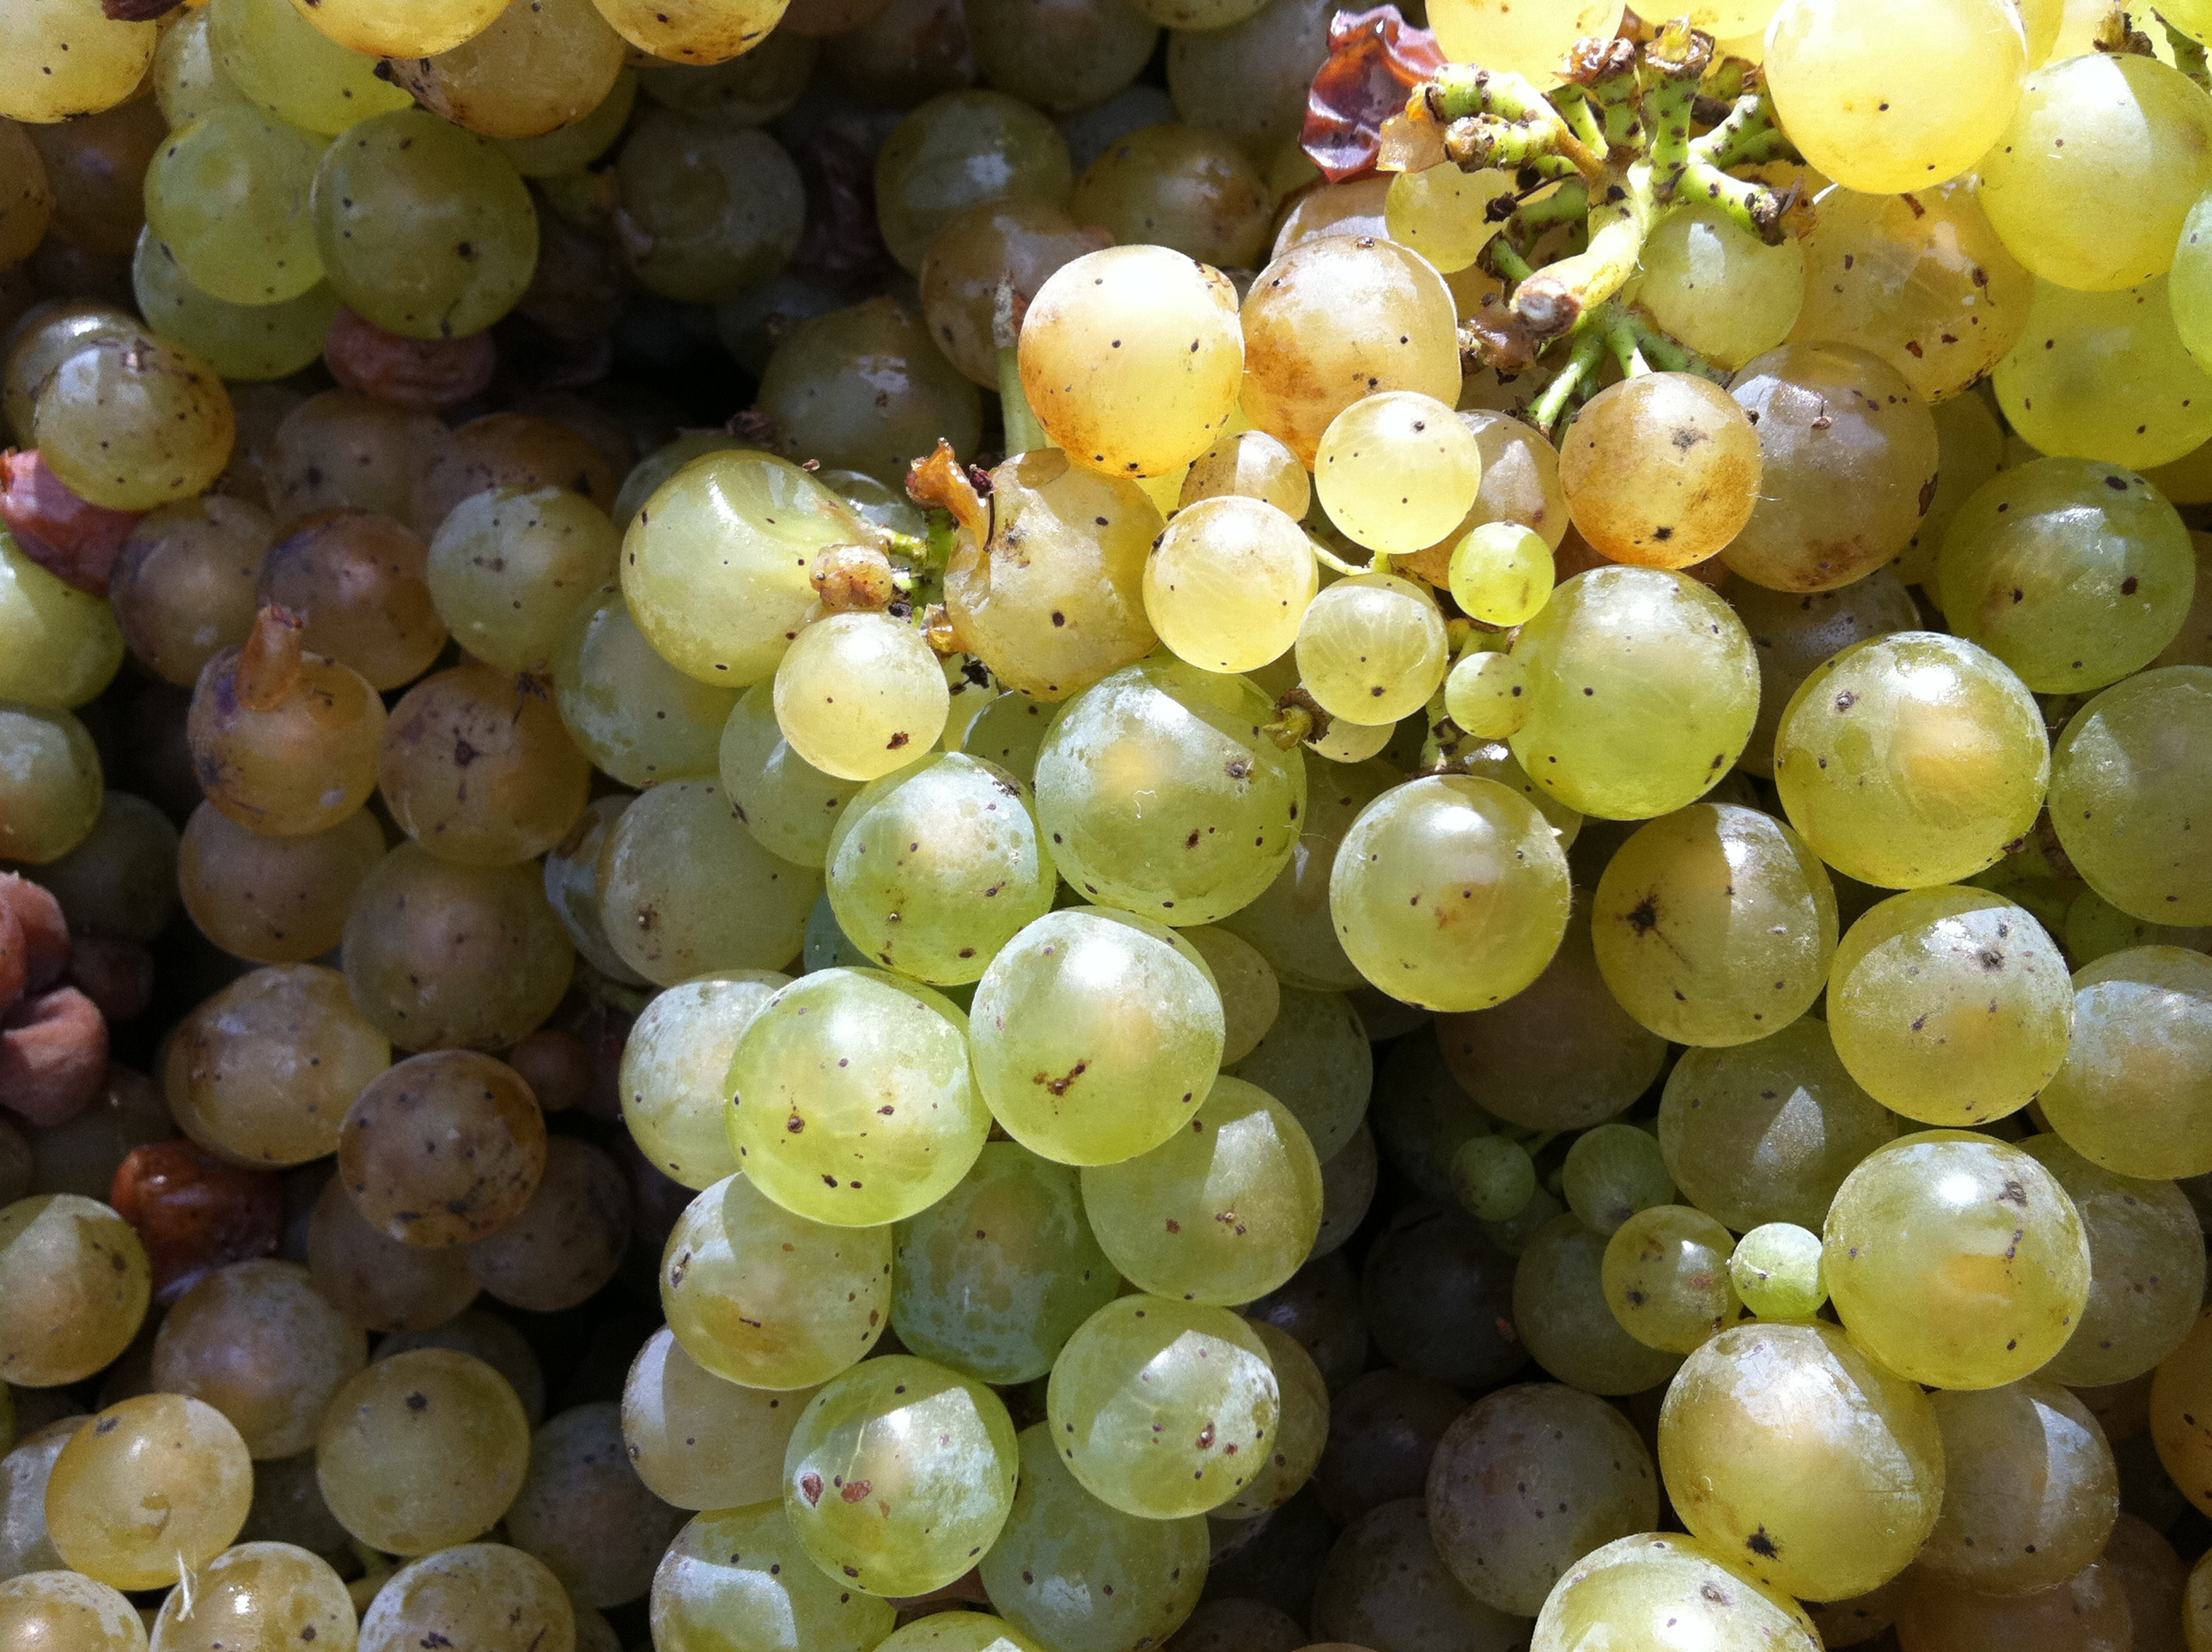 Ripe Riesling grapes